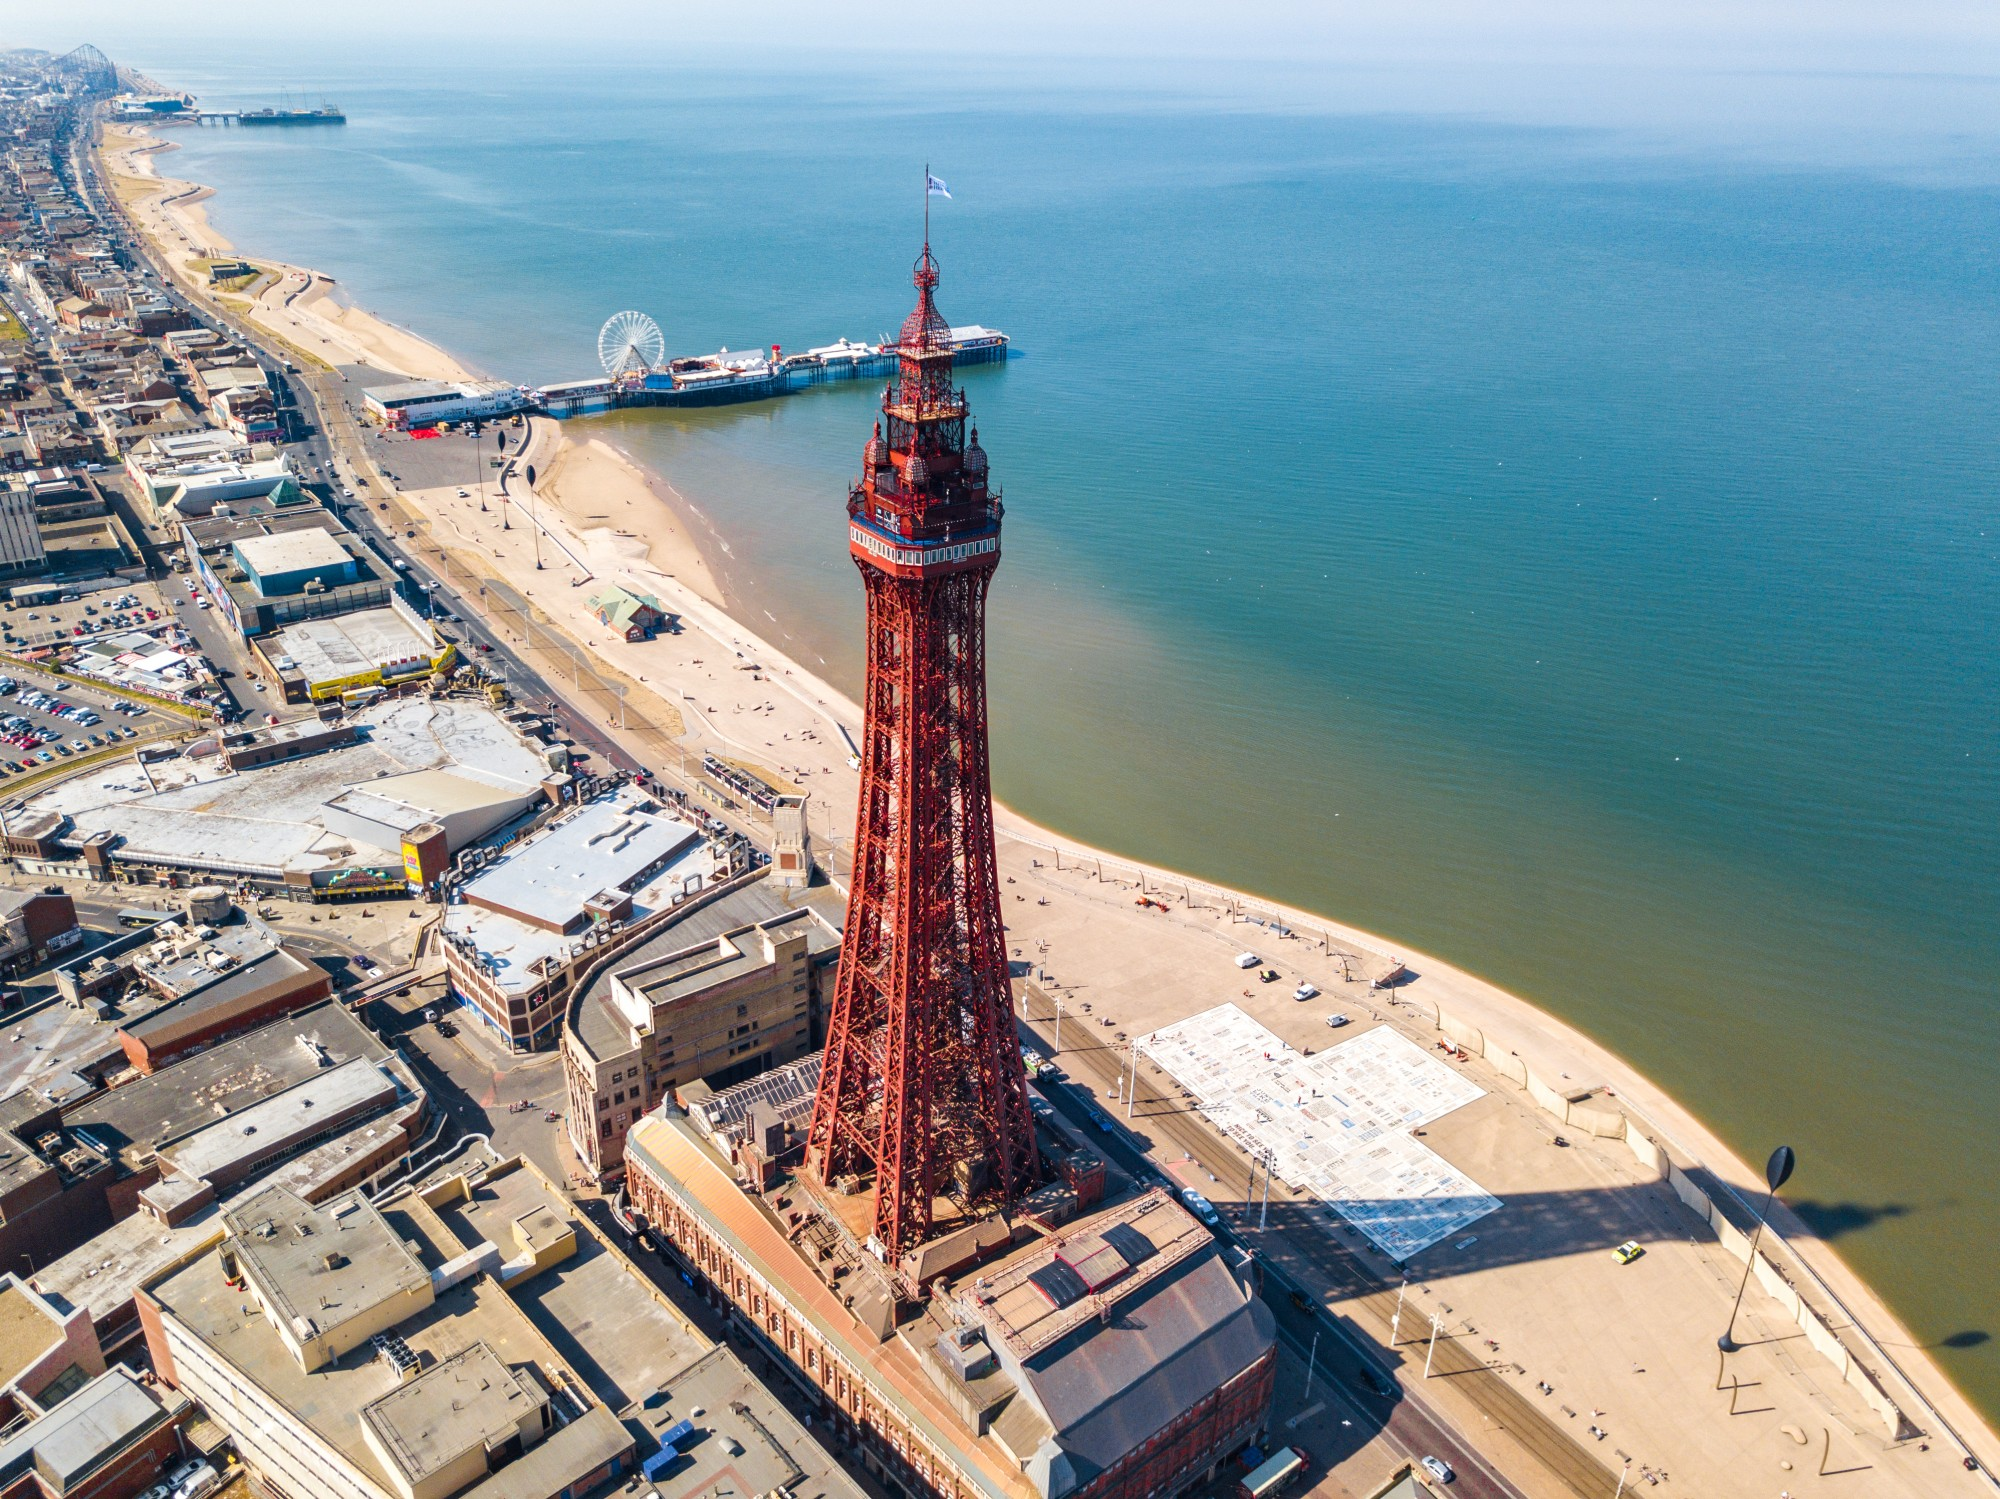 Blackpool tower from above